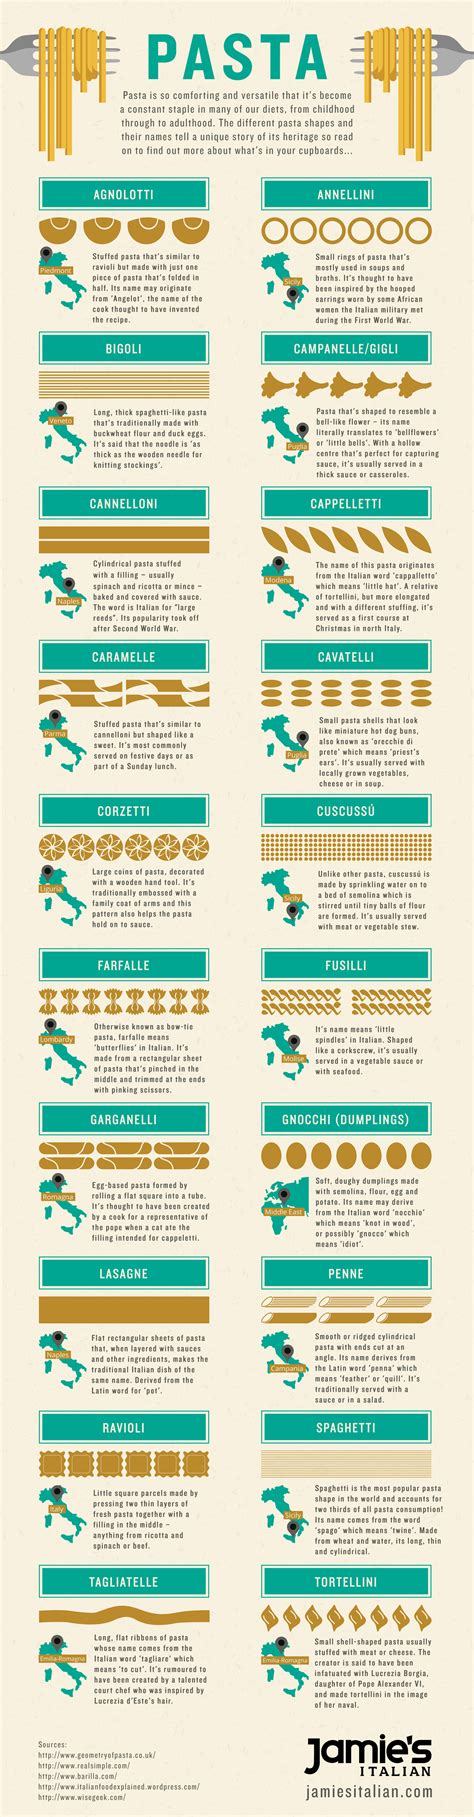 a professional s guide to stressfree italian cooking basic italian recipes books all about pasta an infographic of your favorite food